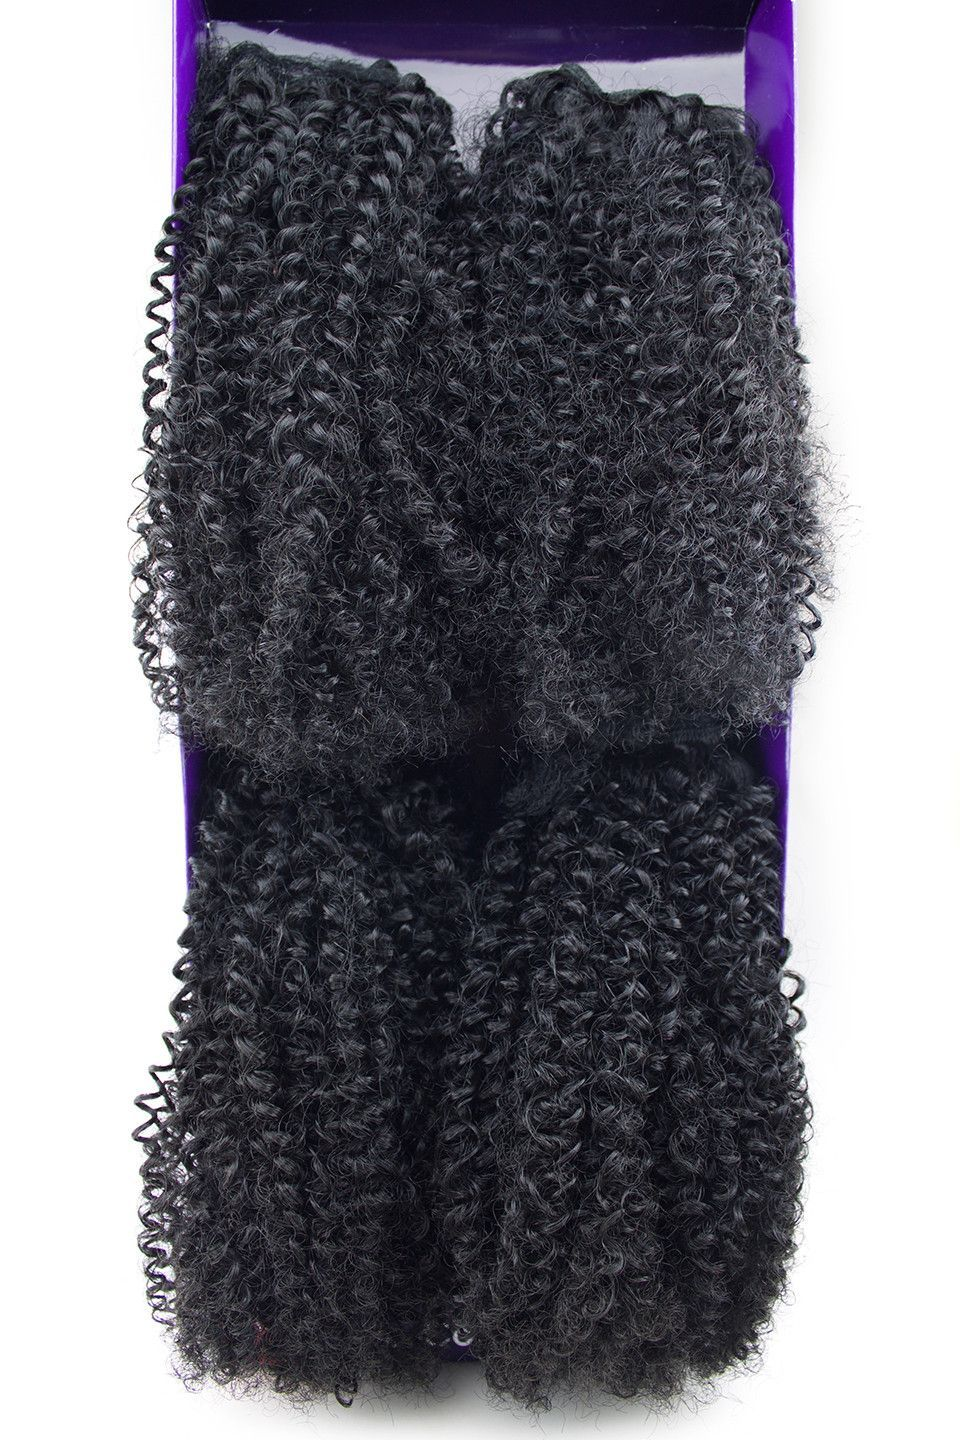 Outre purple pack big beautiful hair c coily human hair blend weave